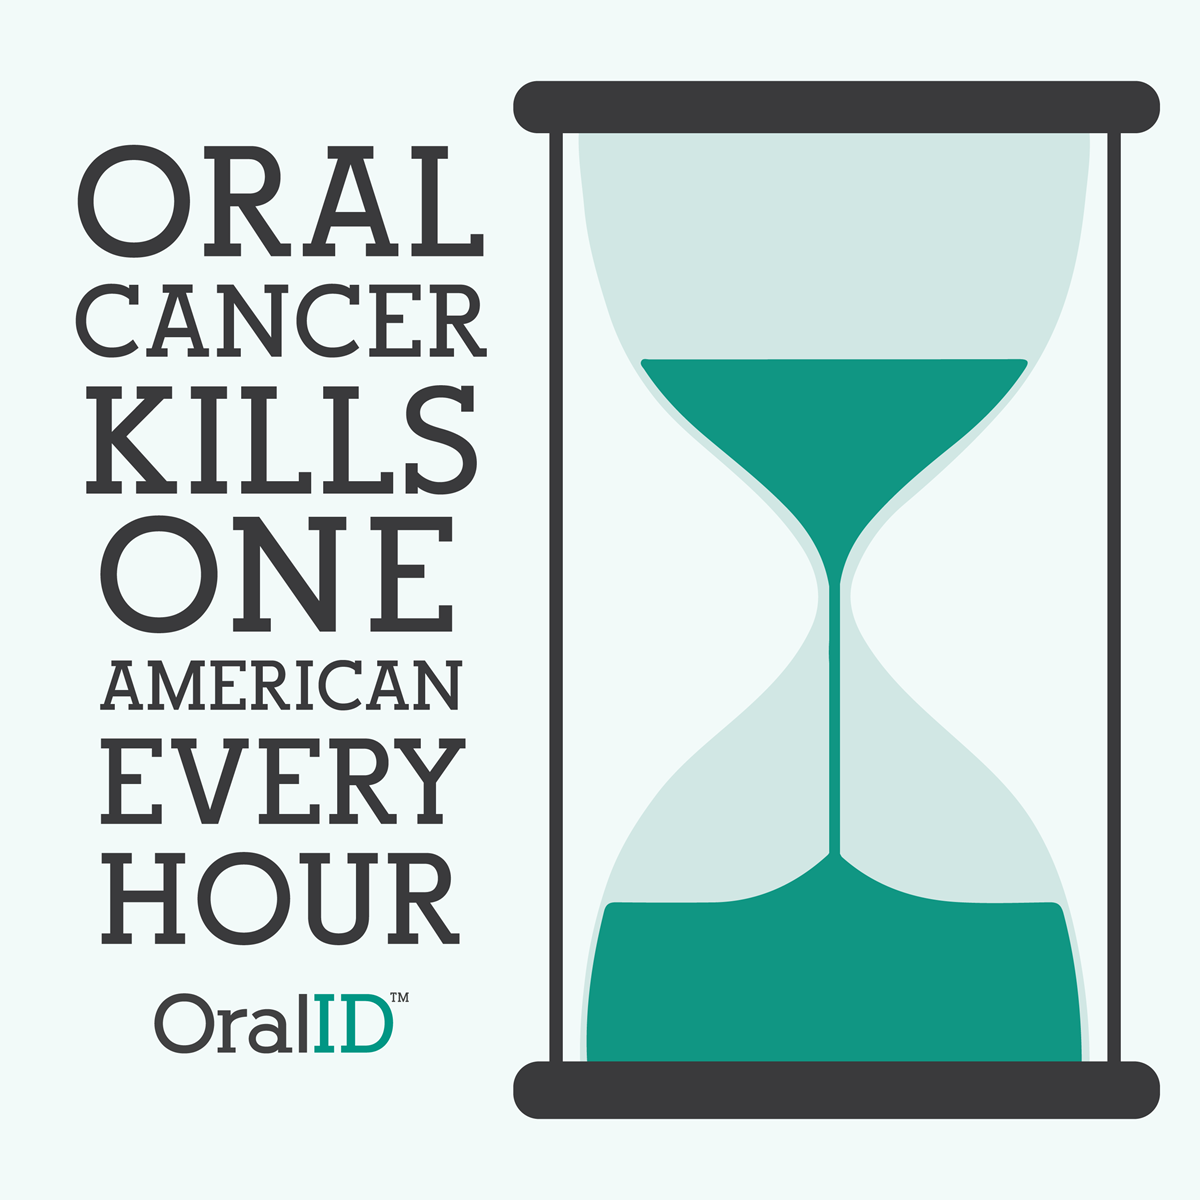 oral cancer kills one american every hour | Smile Designers of North Wales